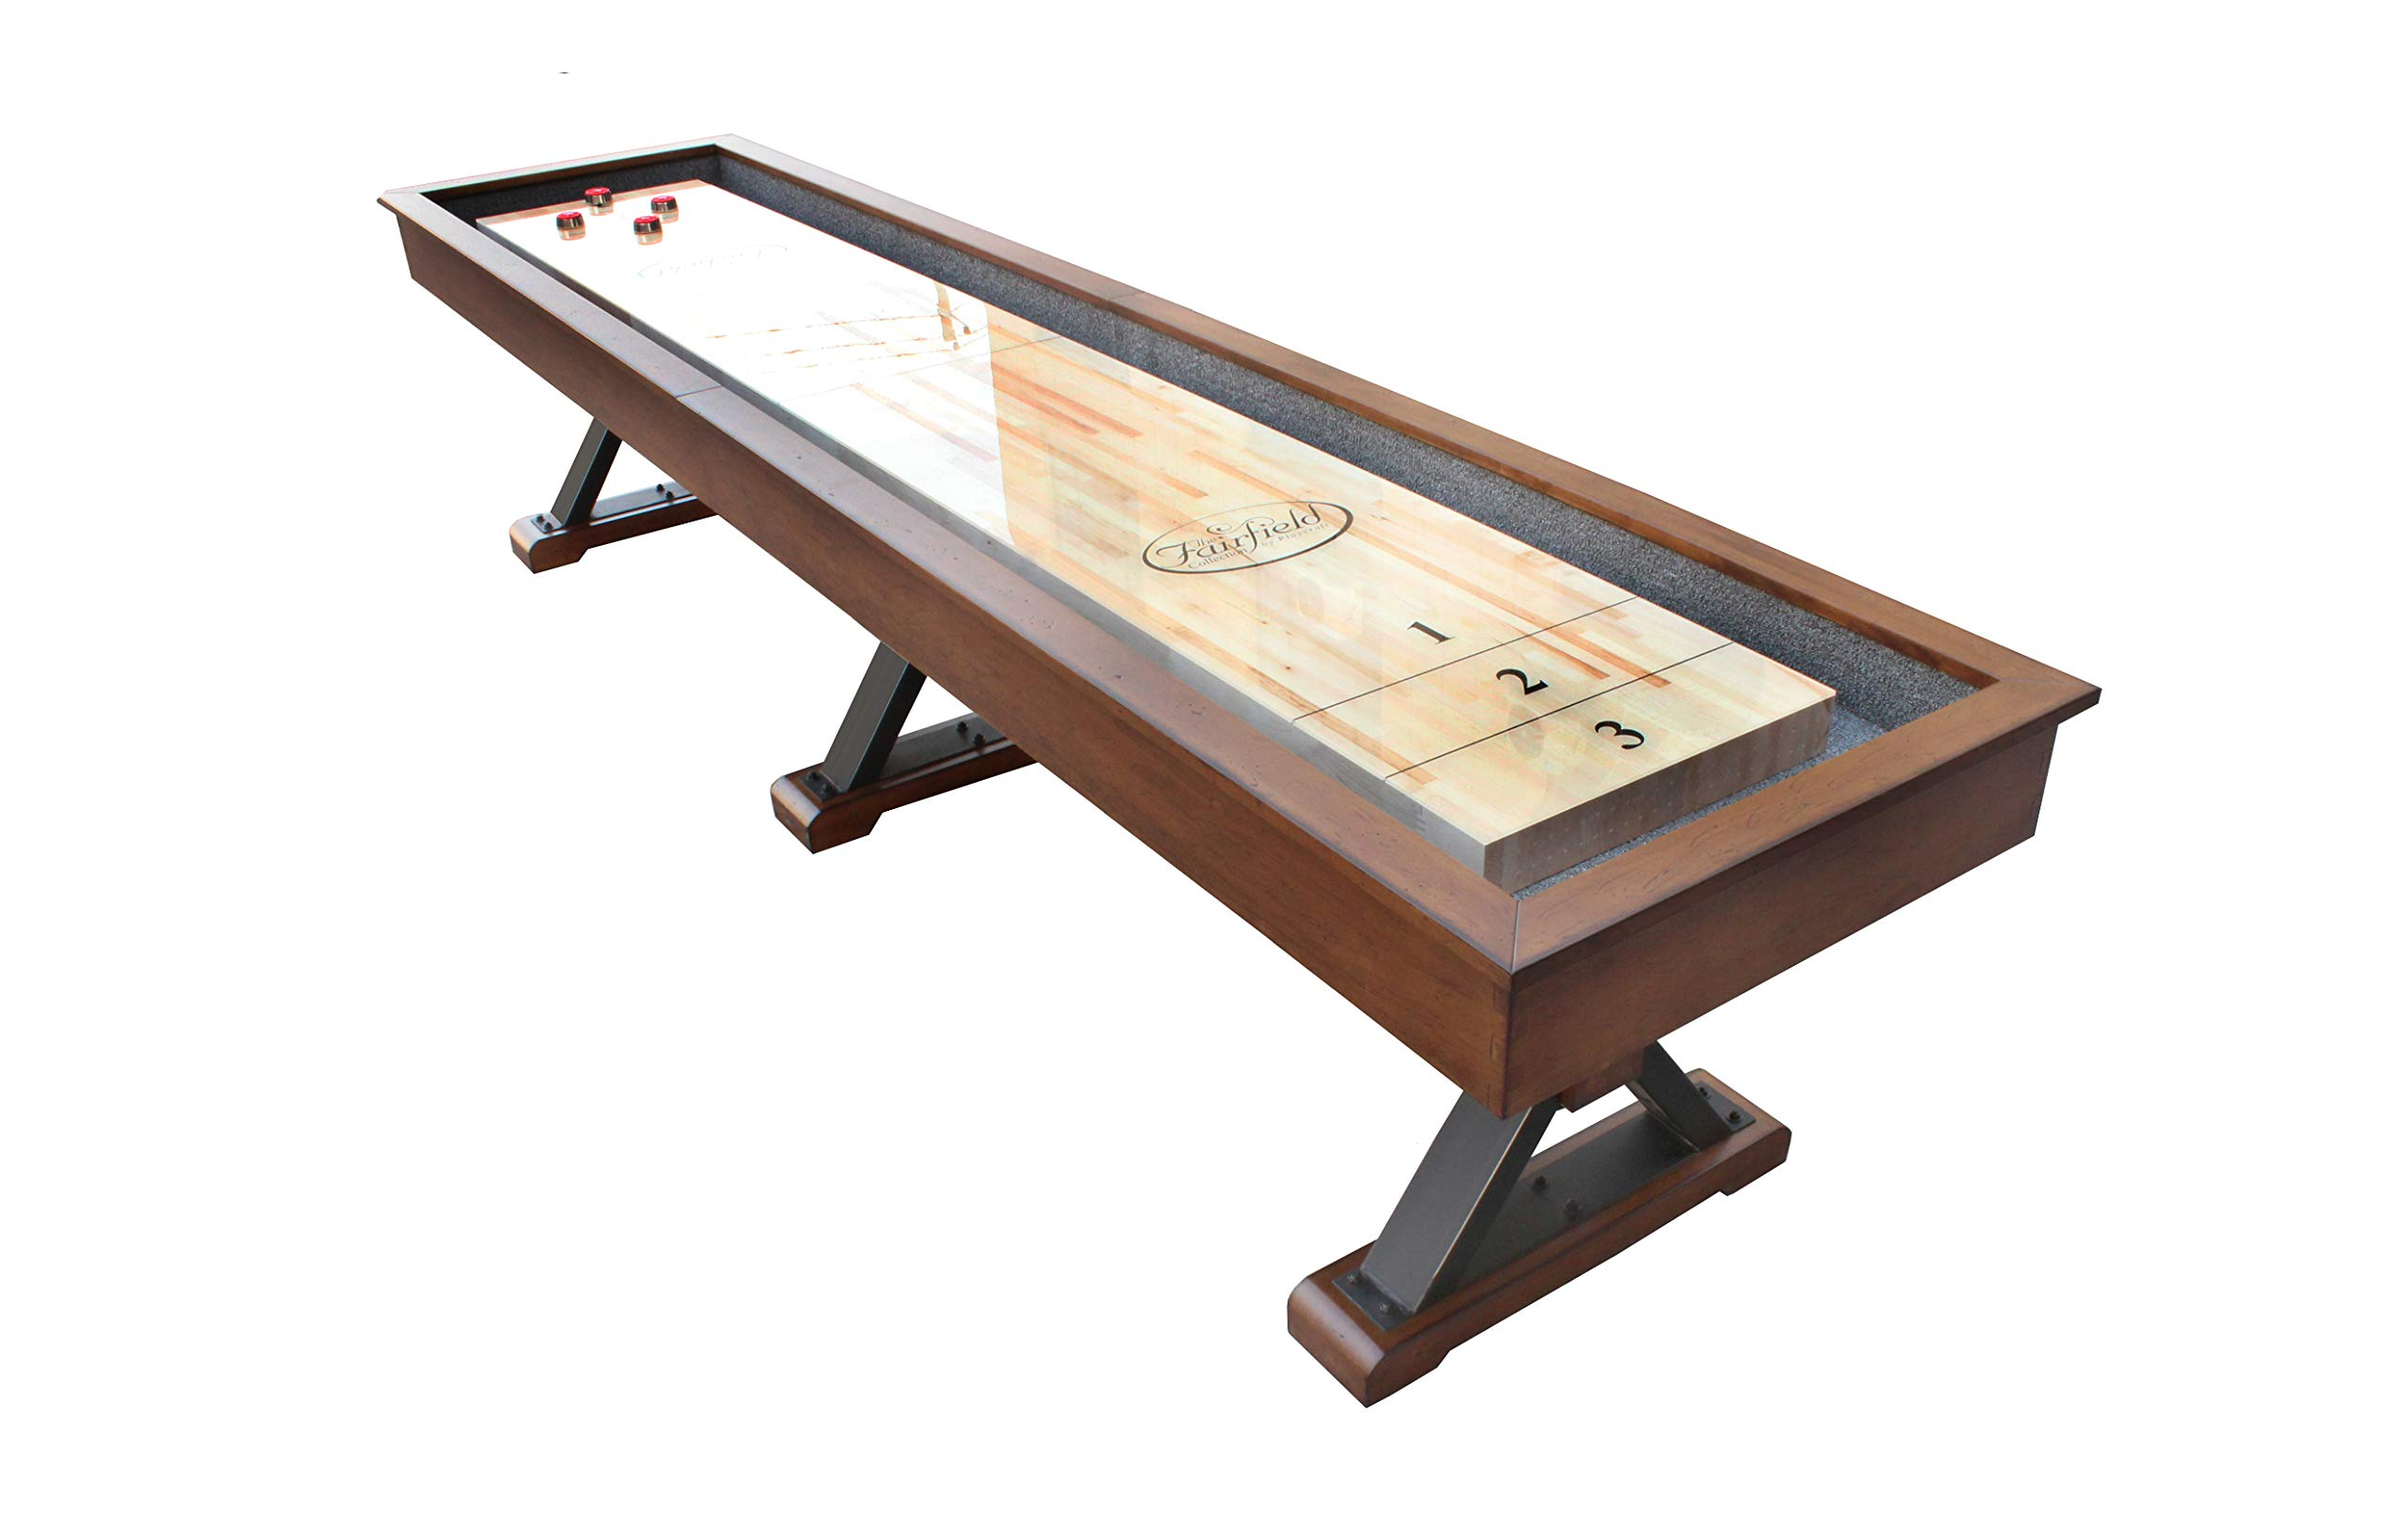 Playcraft Santa Fe 12' Pro-Style Shuffleboard Table by Playcraft